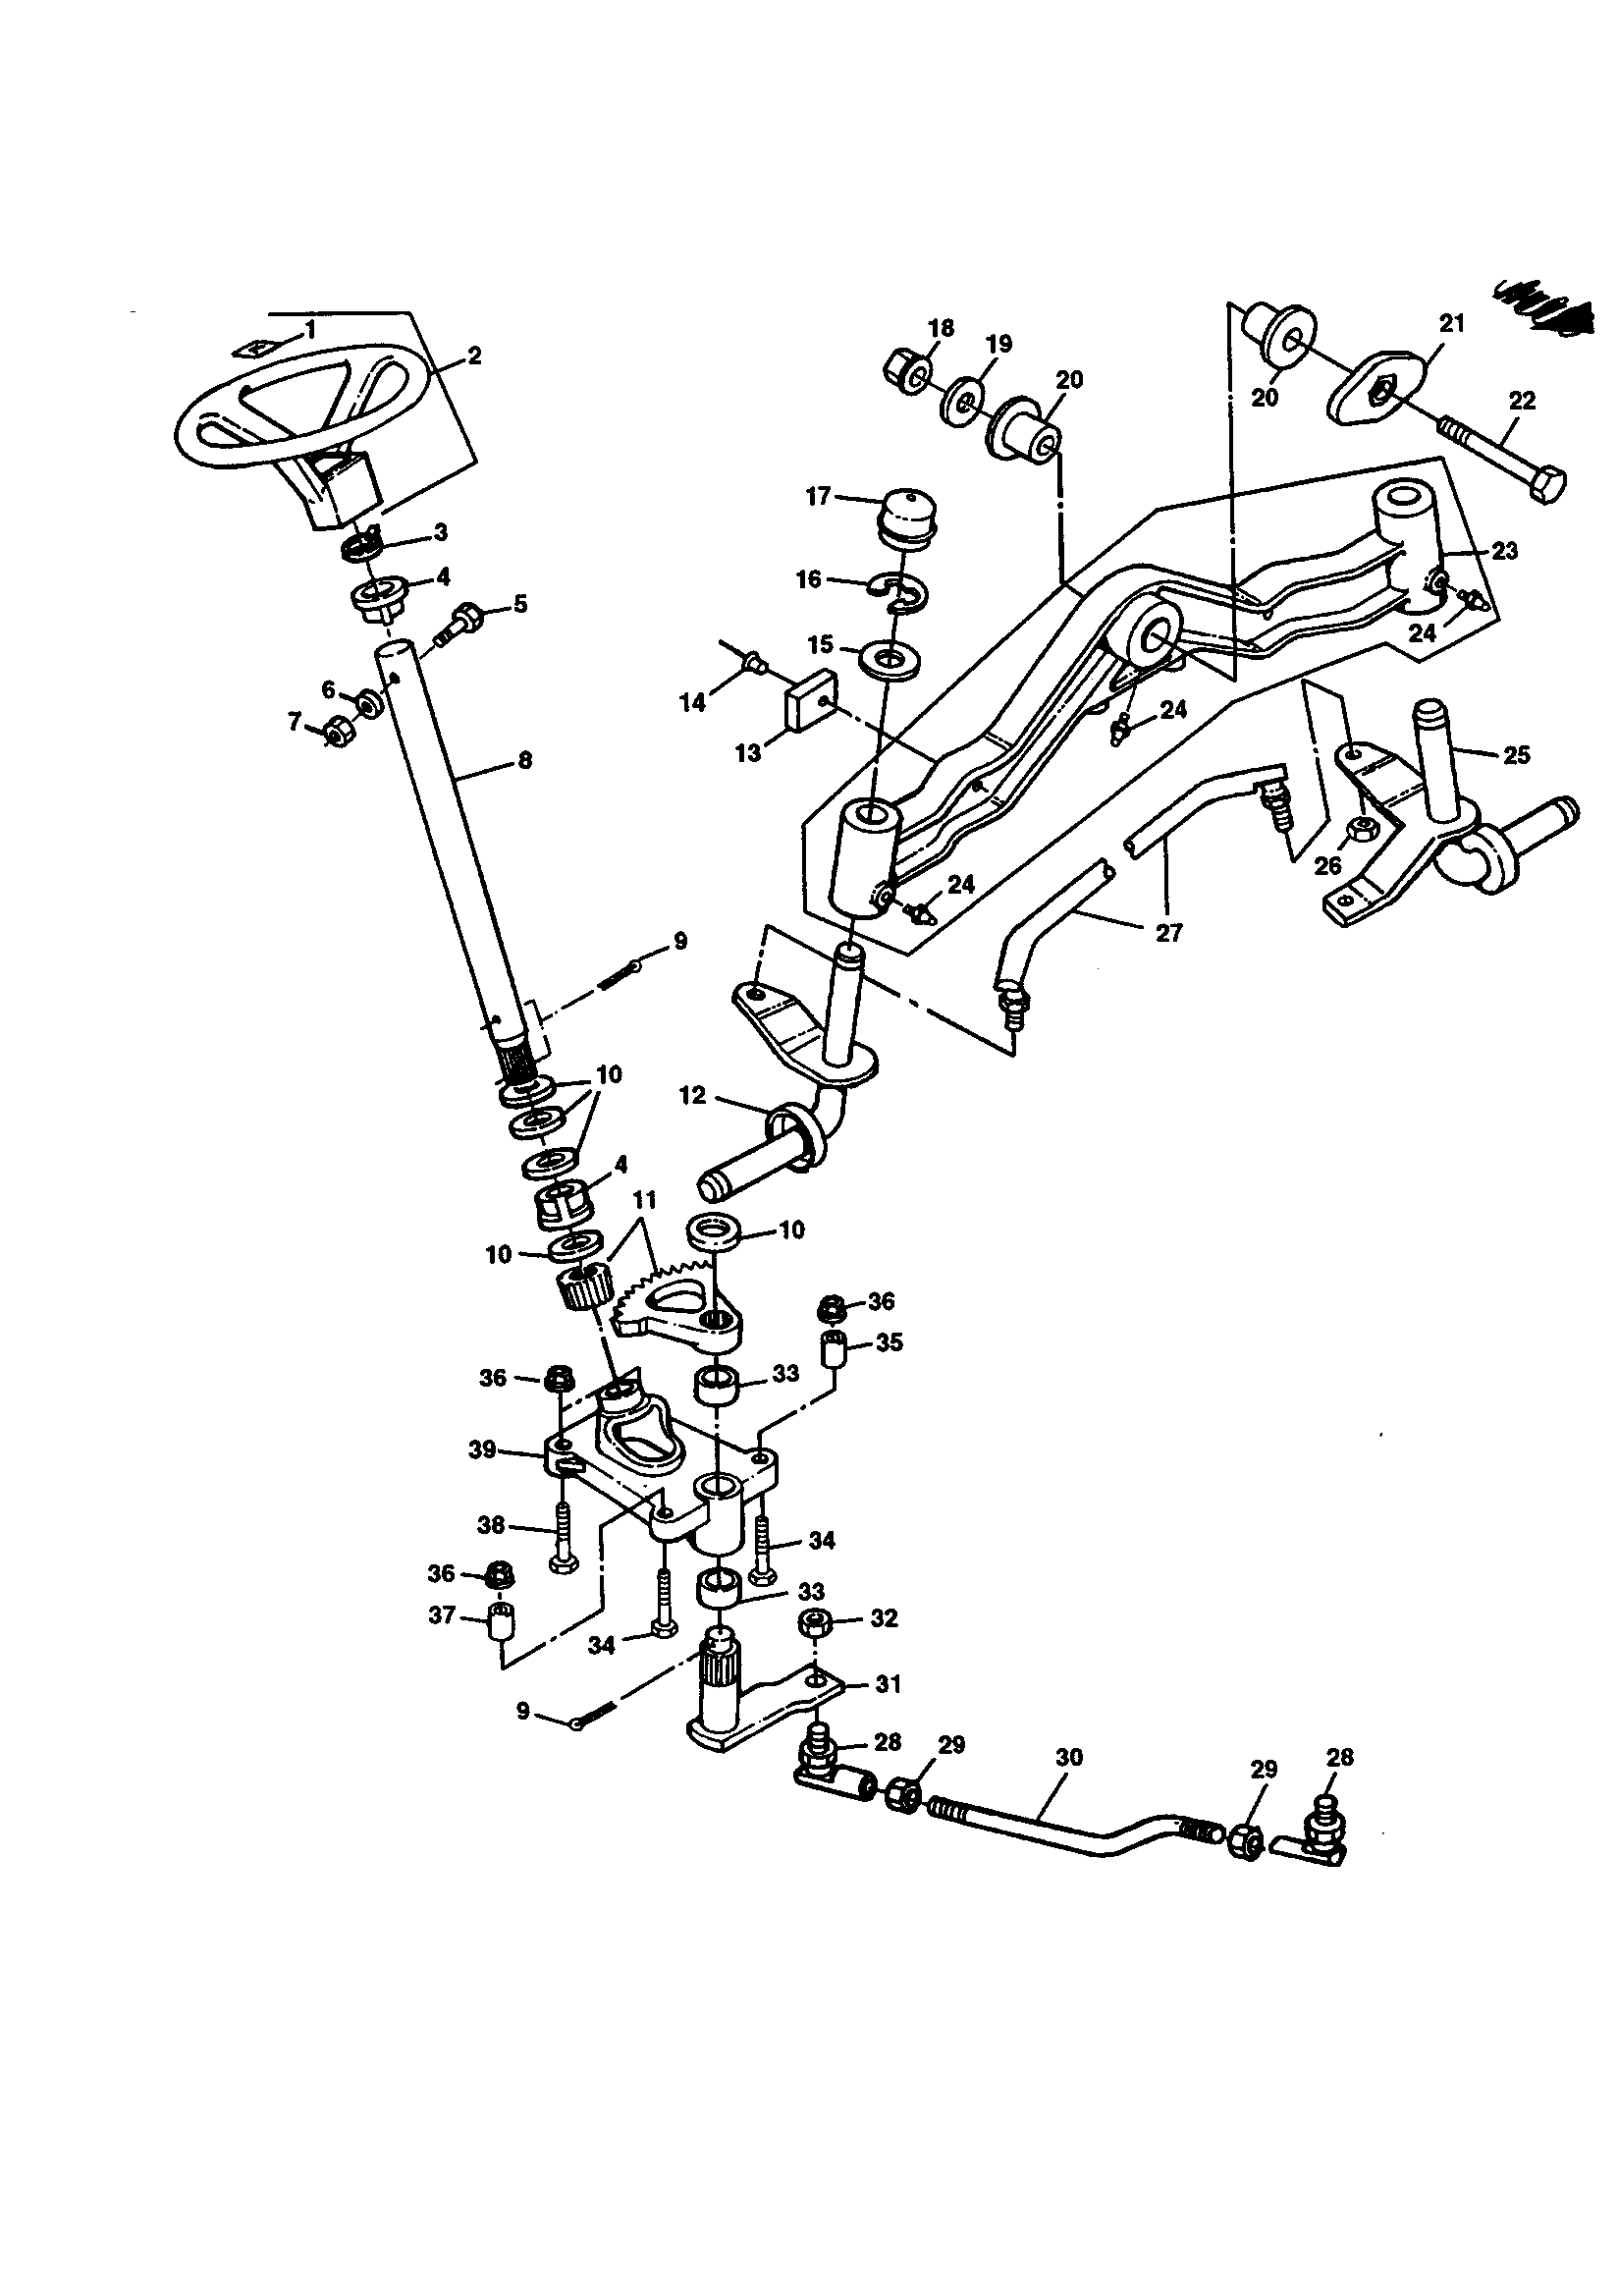 hight resolution of sabre wiring diagram